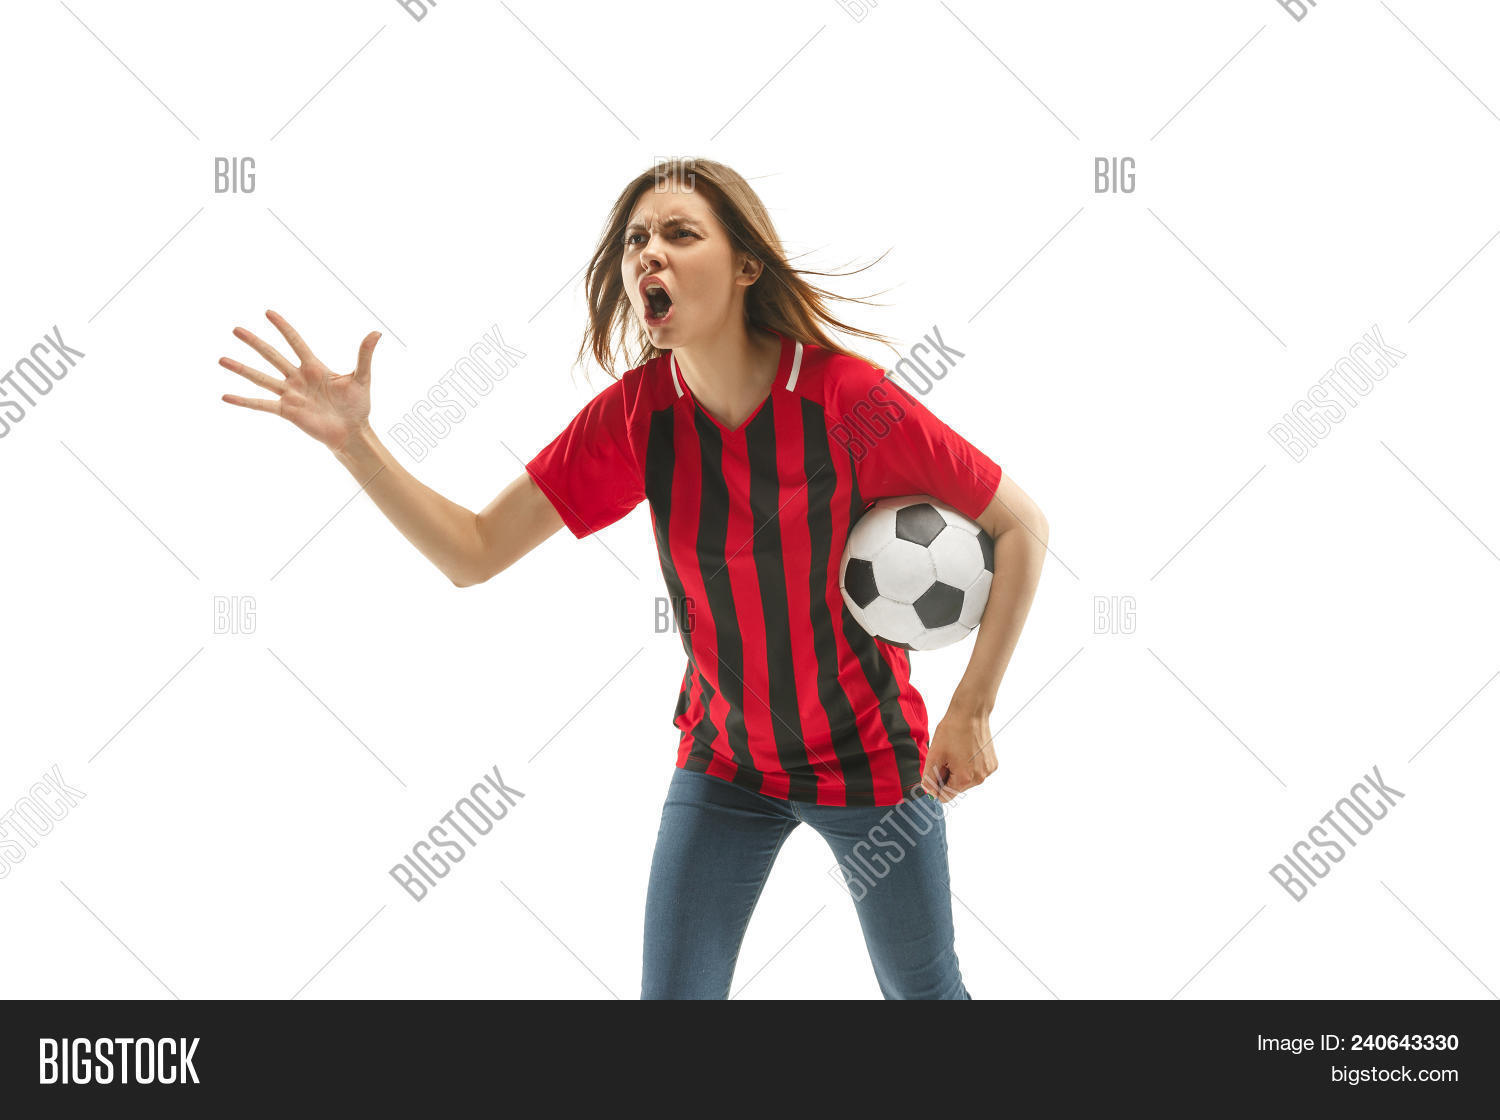 Belgian female fan celebrating on white background. The young woman in soccer football uniform as winner with ball isolated at white studio. Fan, support concept. Human emotions concept.